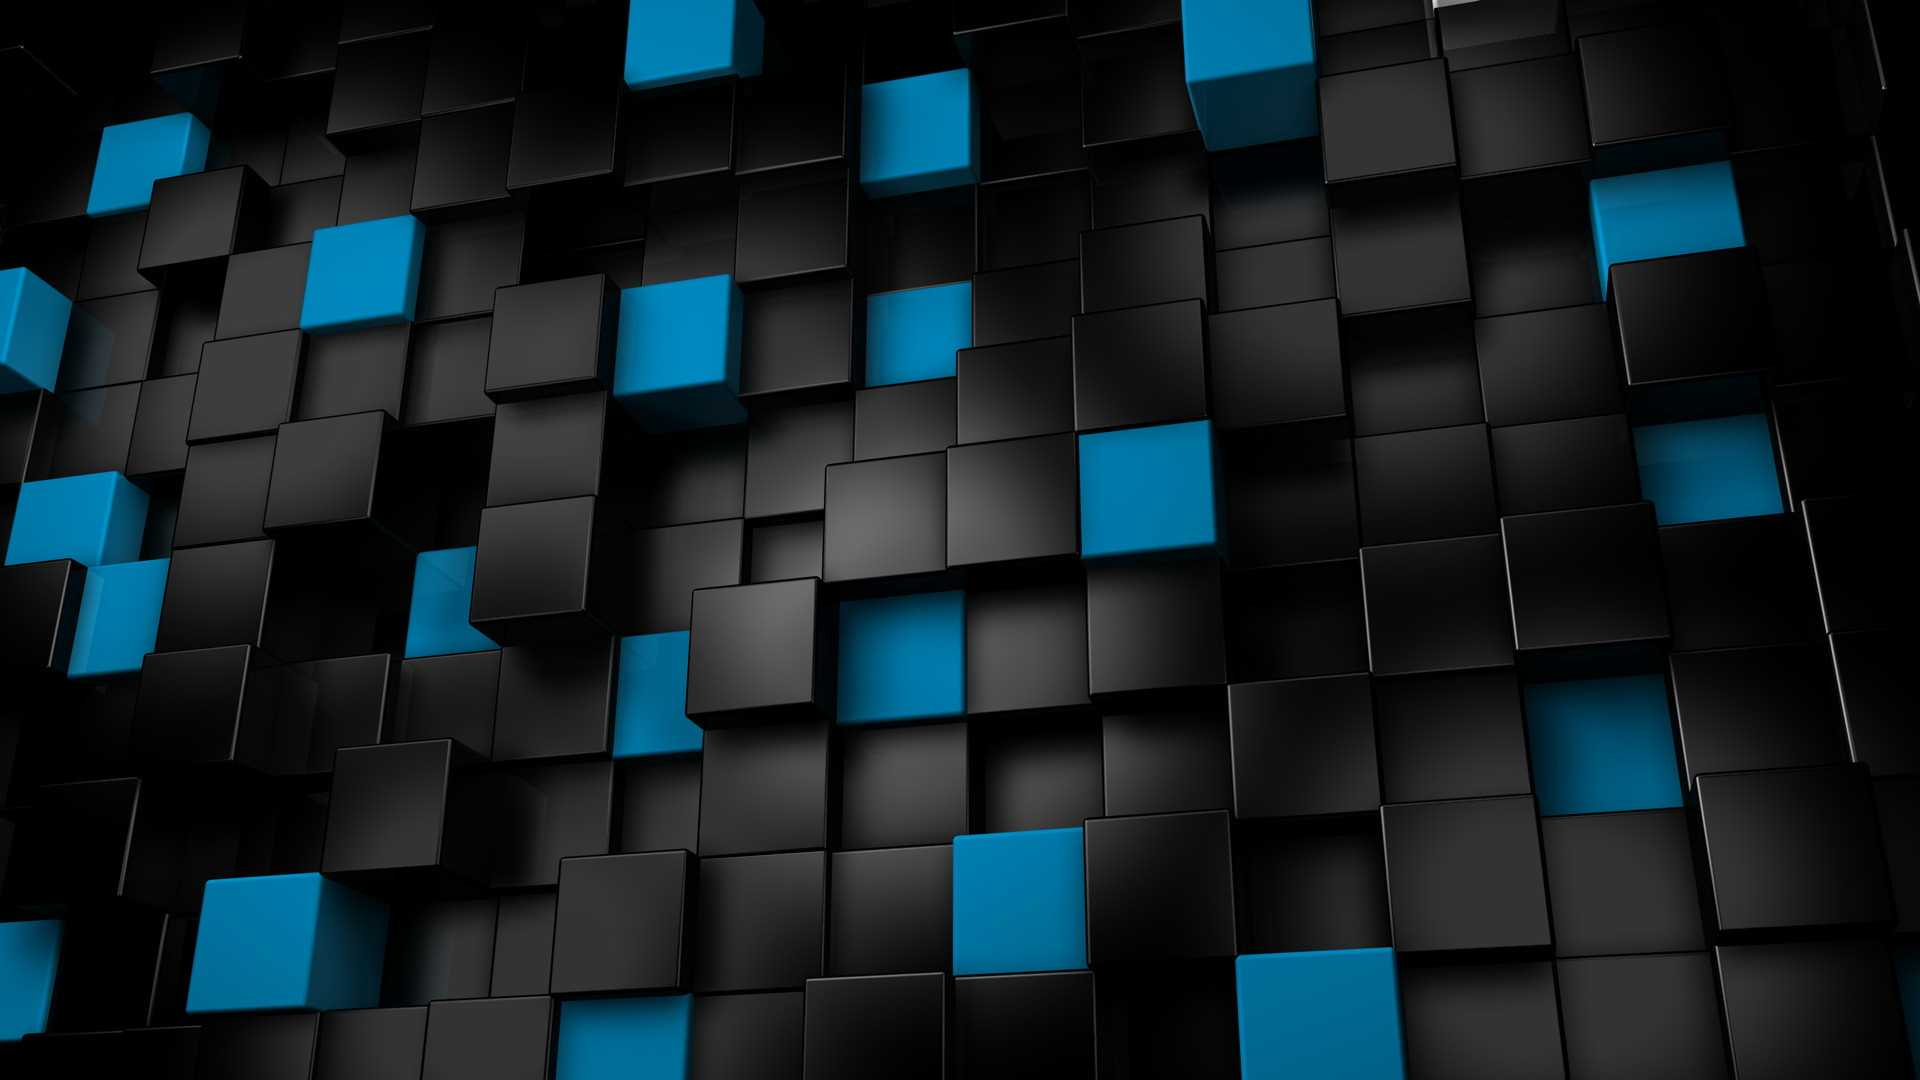 3D Honeycomb Wallpaper